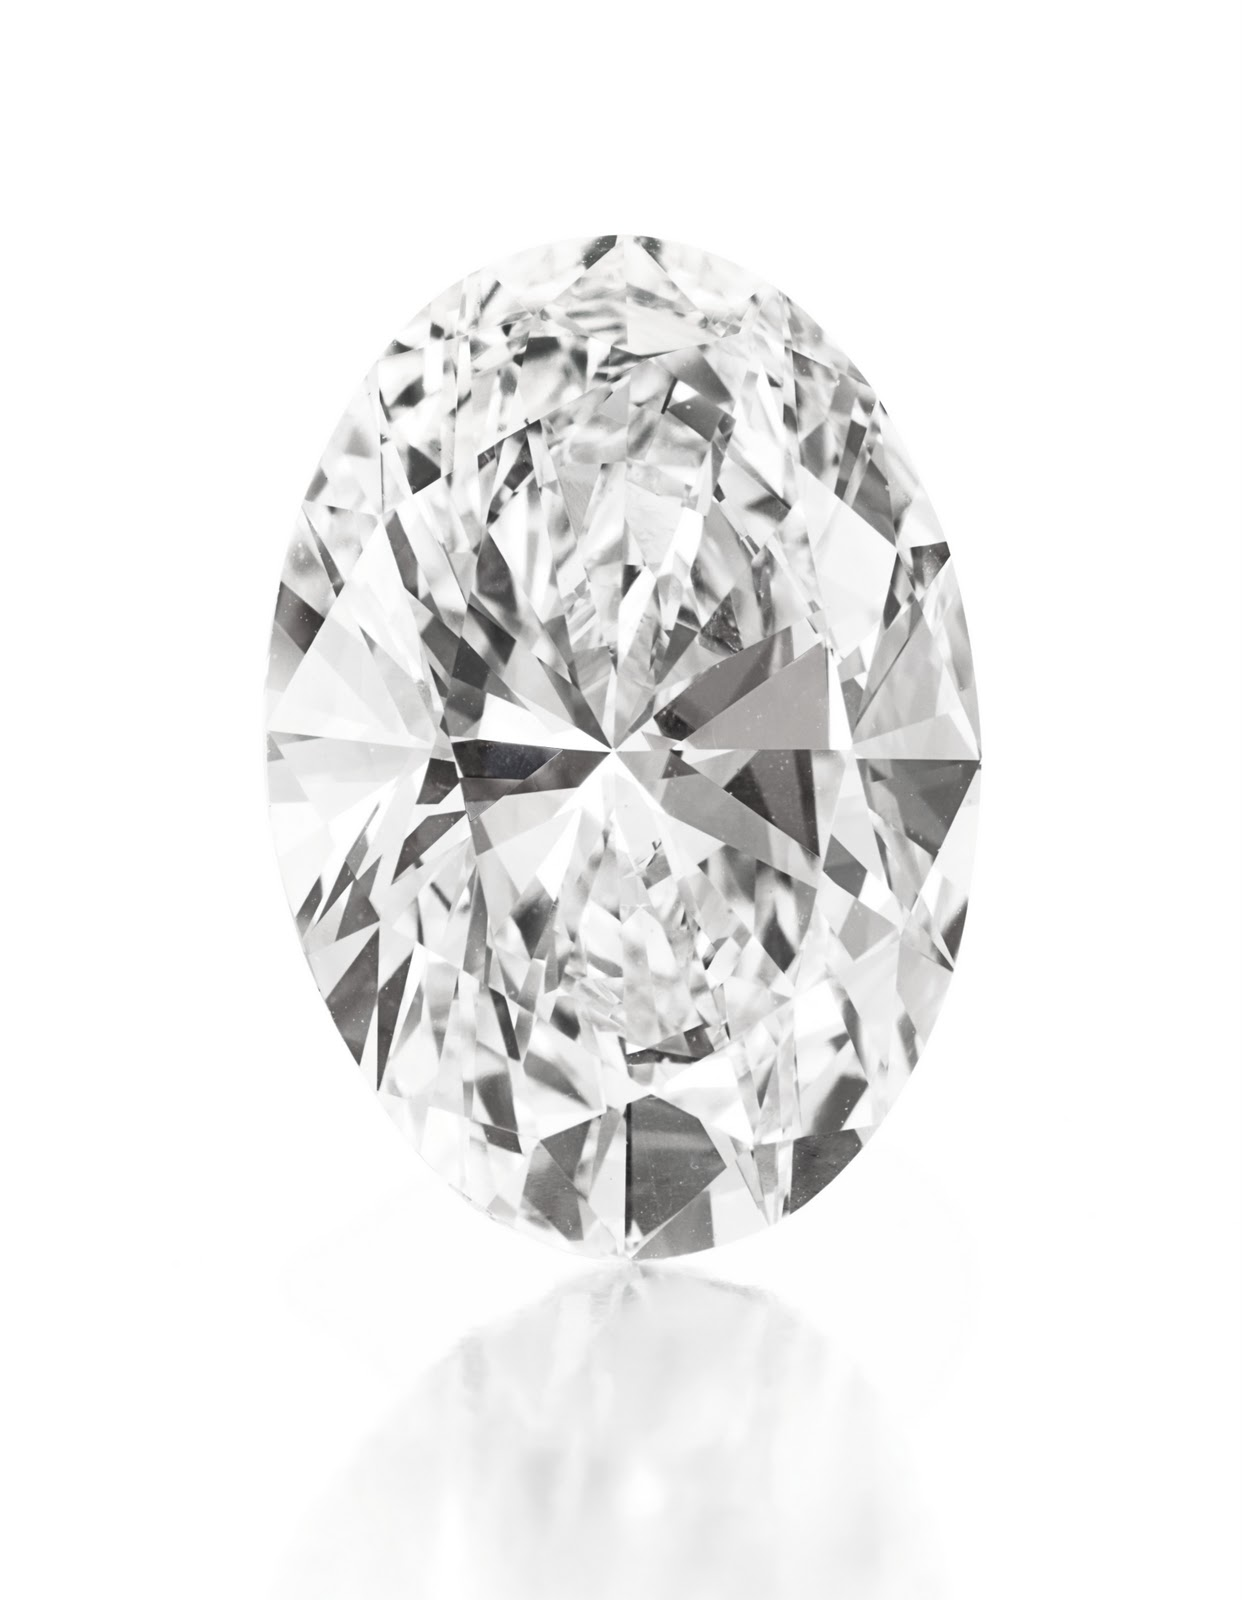 While the more unusual cuts of diamonds have been gathering momentum - A Rare Vivid Yellow 32 77 Ct Diamond Sold For More Than 6 5 Million At Christie S New York Magnificent Jewels Auction Held Tuesday